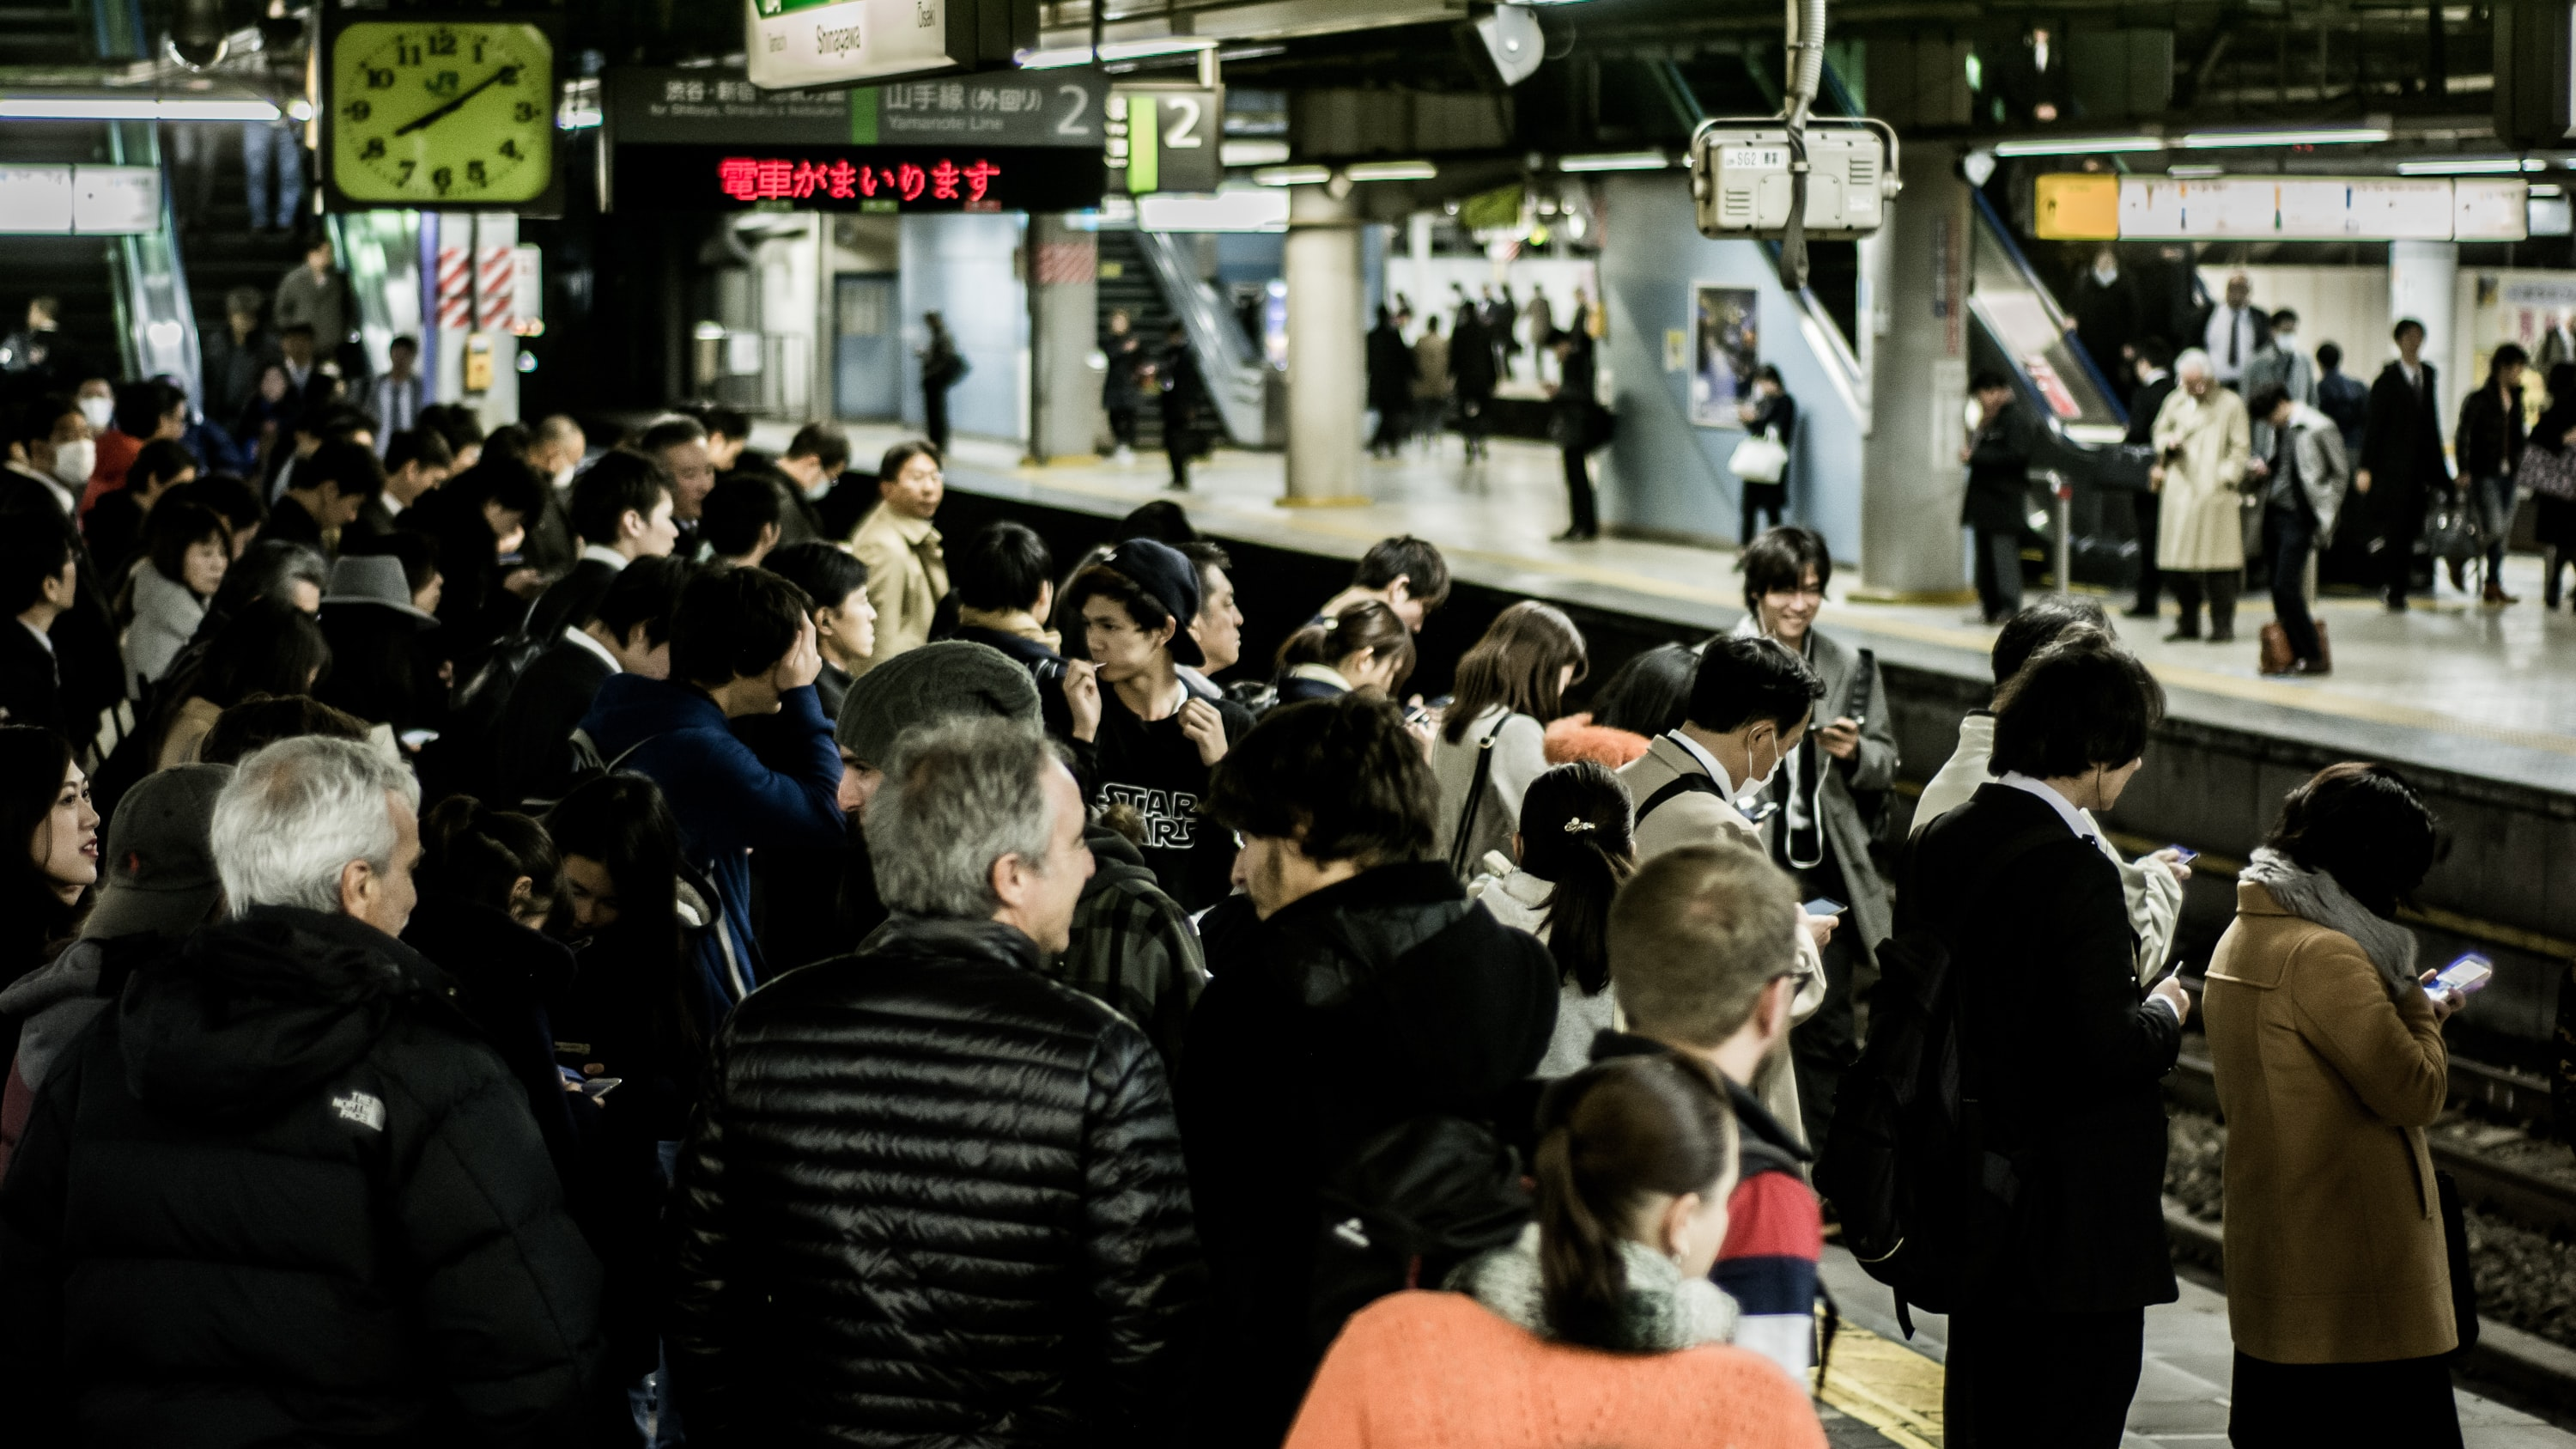 A busy train station in Tokyo's Shinjuku district